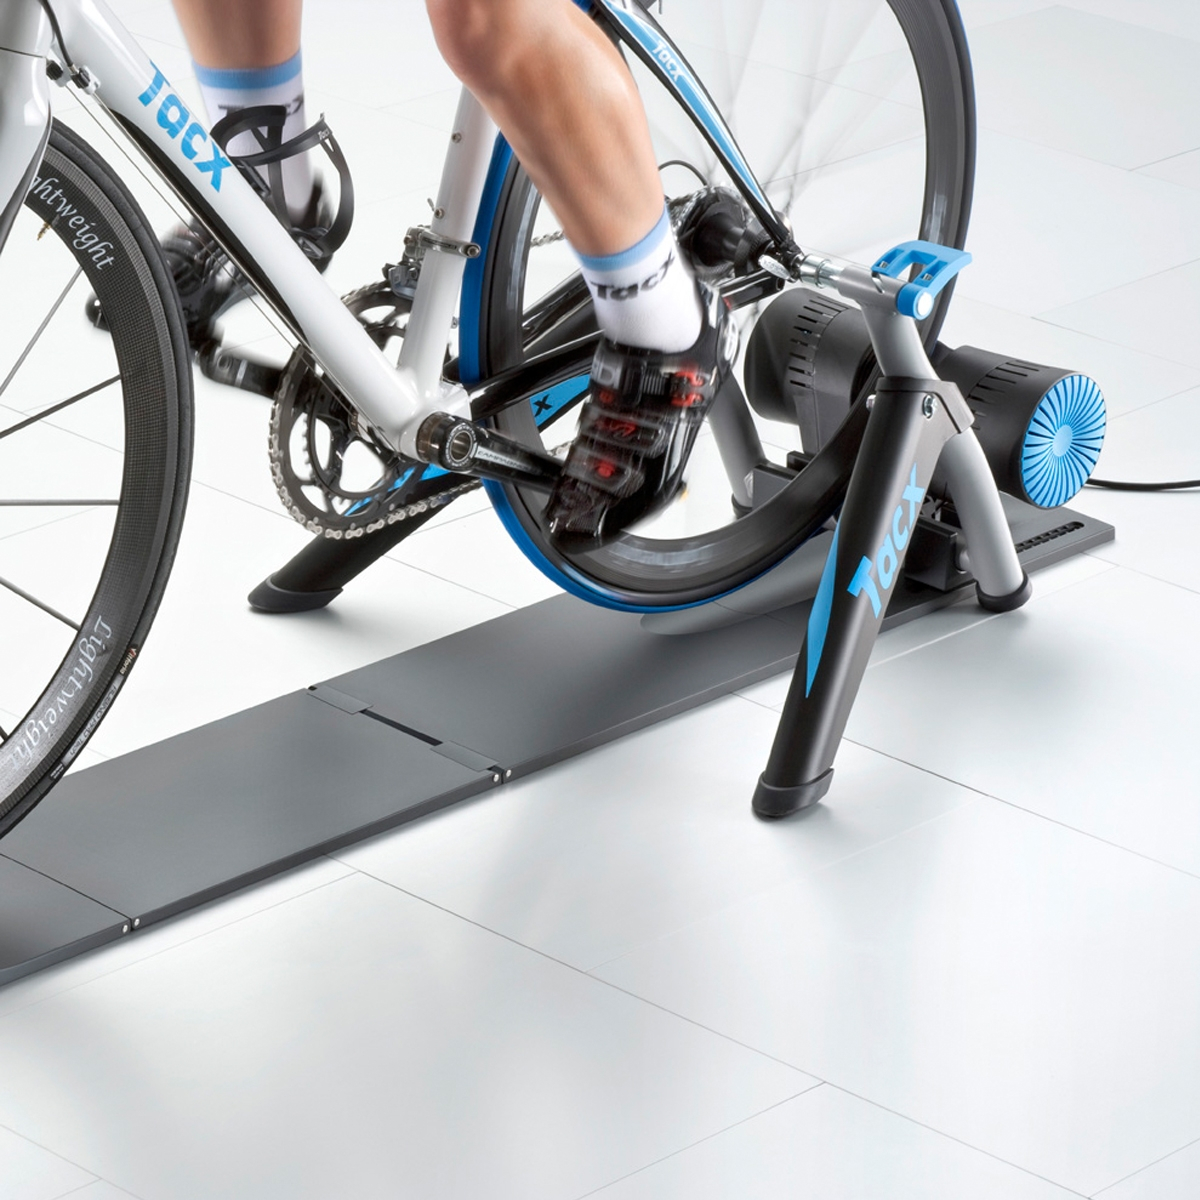 Smart Trainer Cycling Amazon Com: Tacx I-Genius Multiplayer Smart Trainer